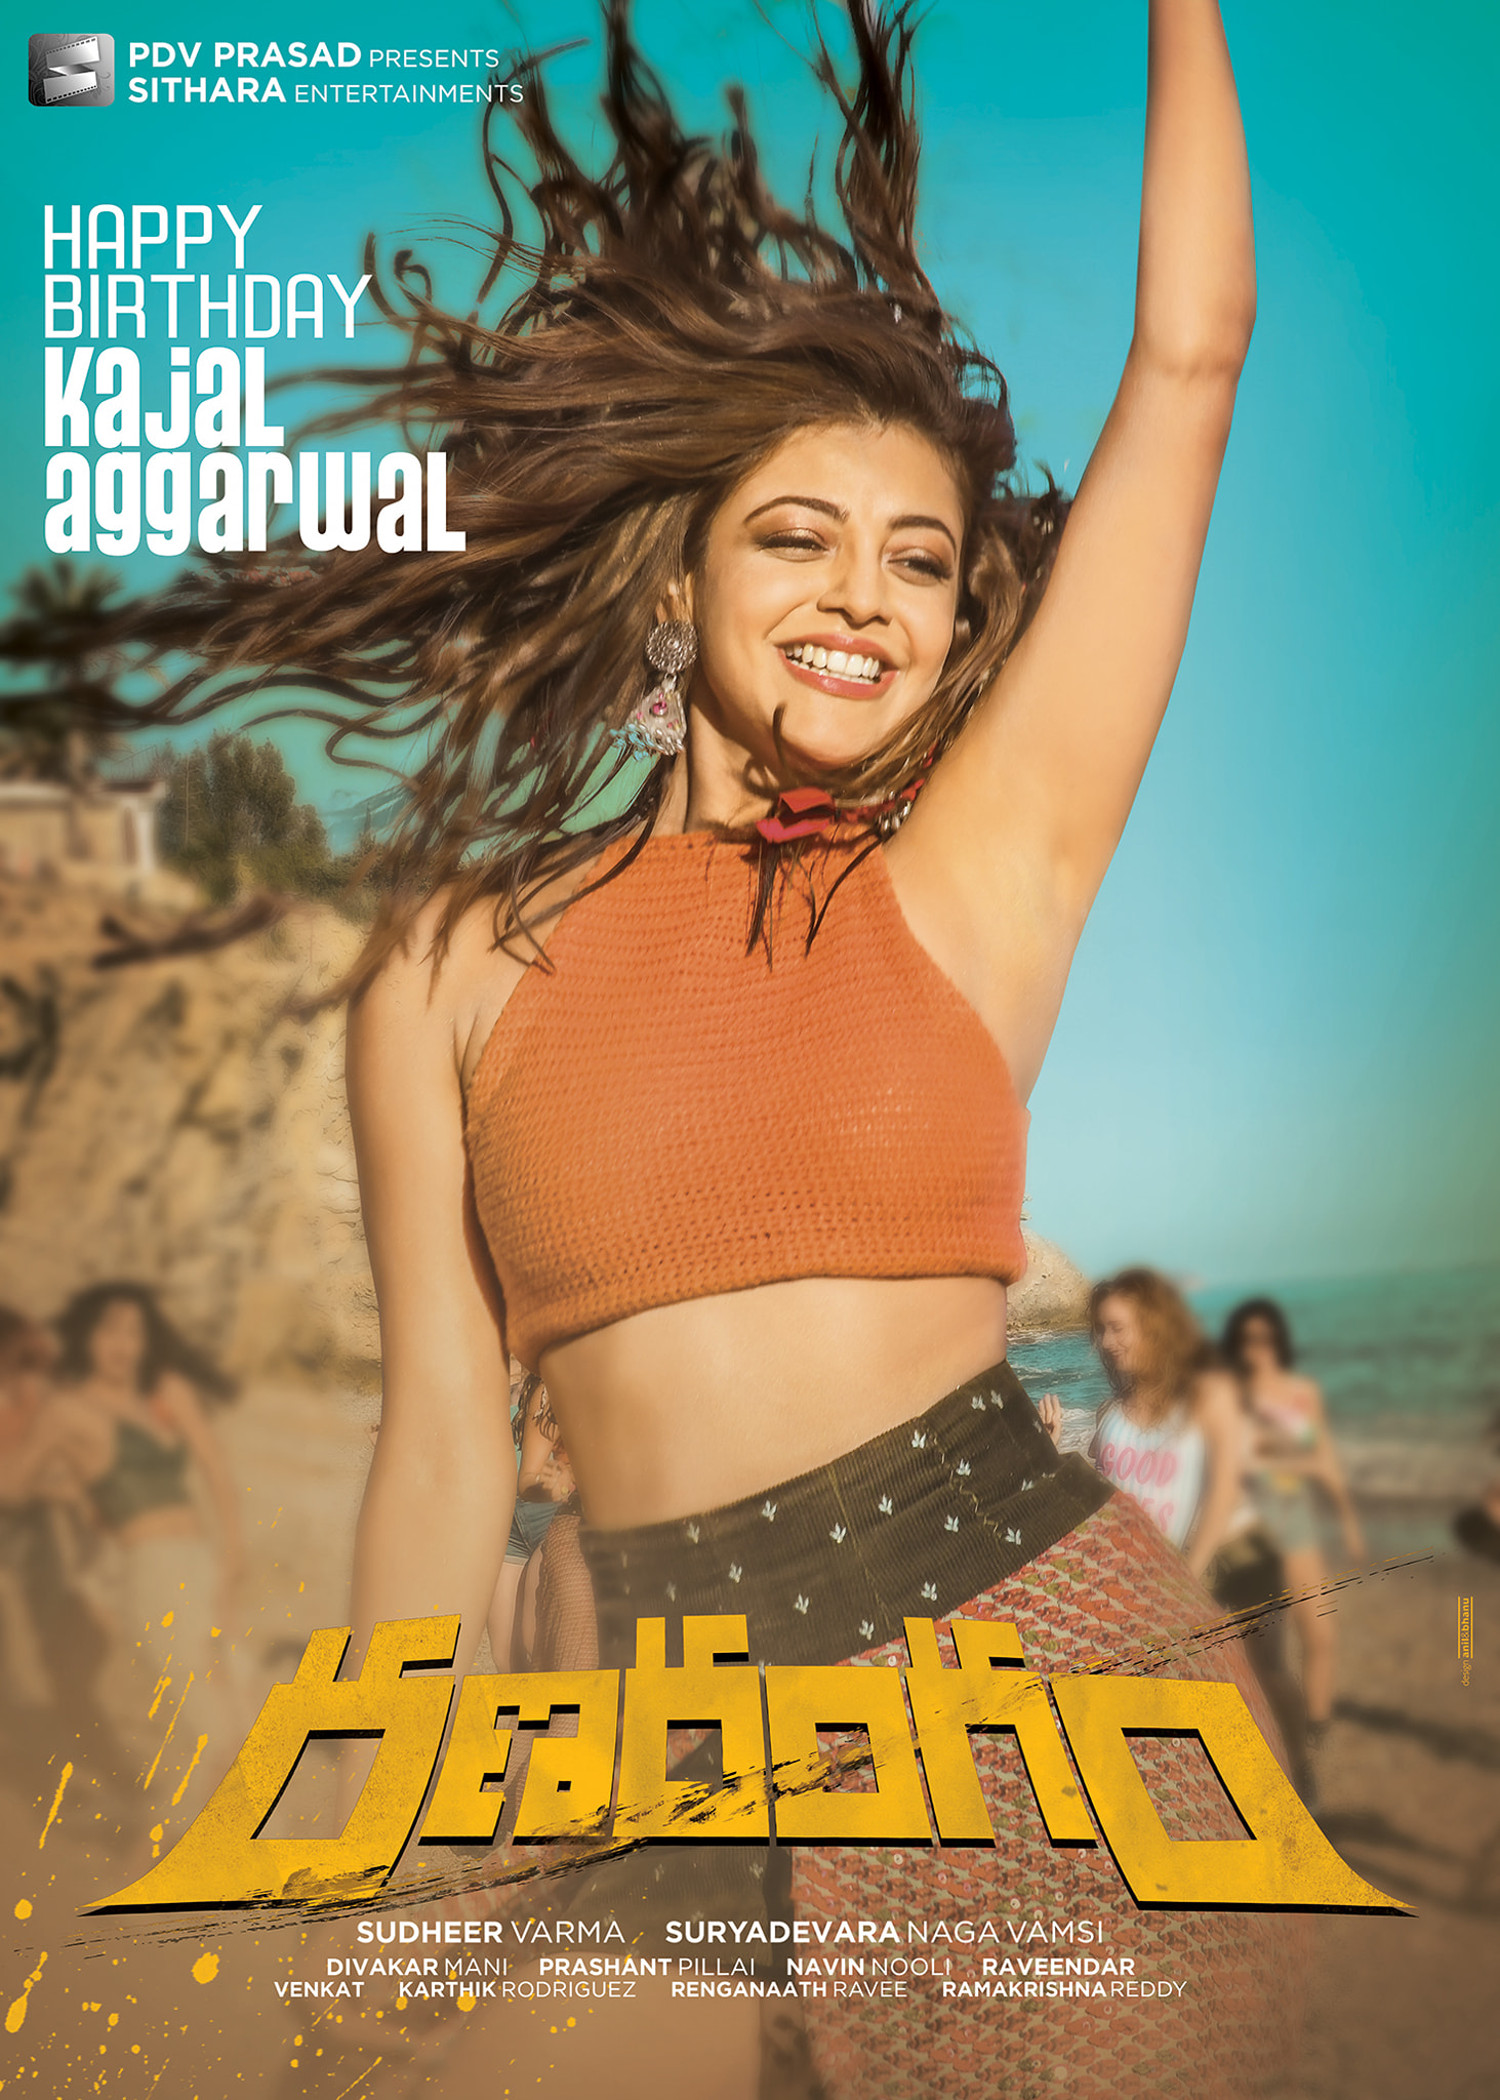 Ranarangam Movie Heroine Kajal Aggarwal Birthday Poster HD